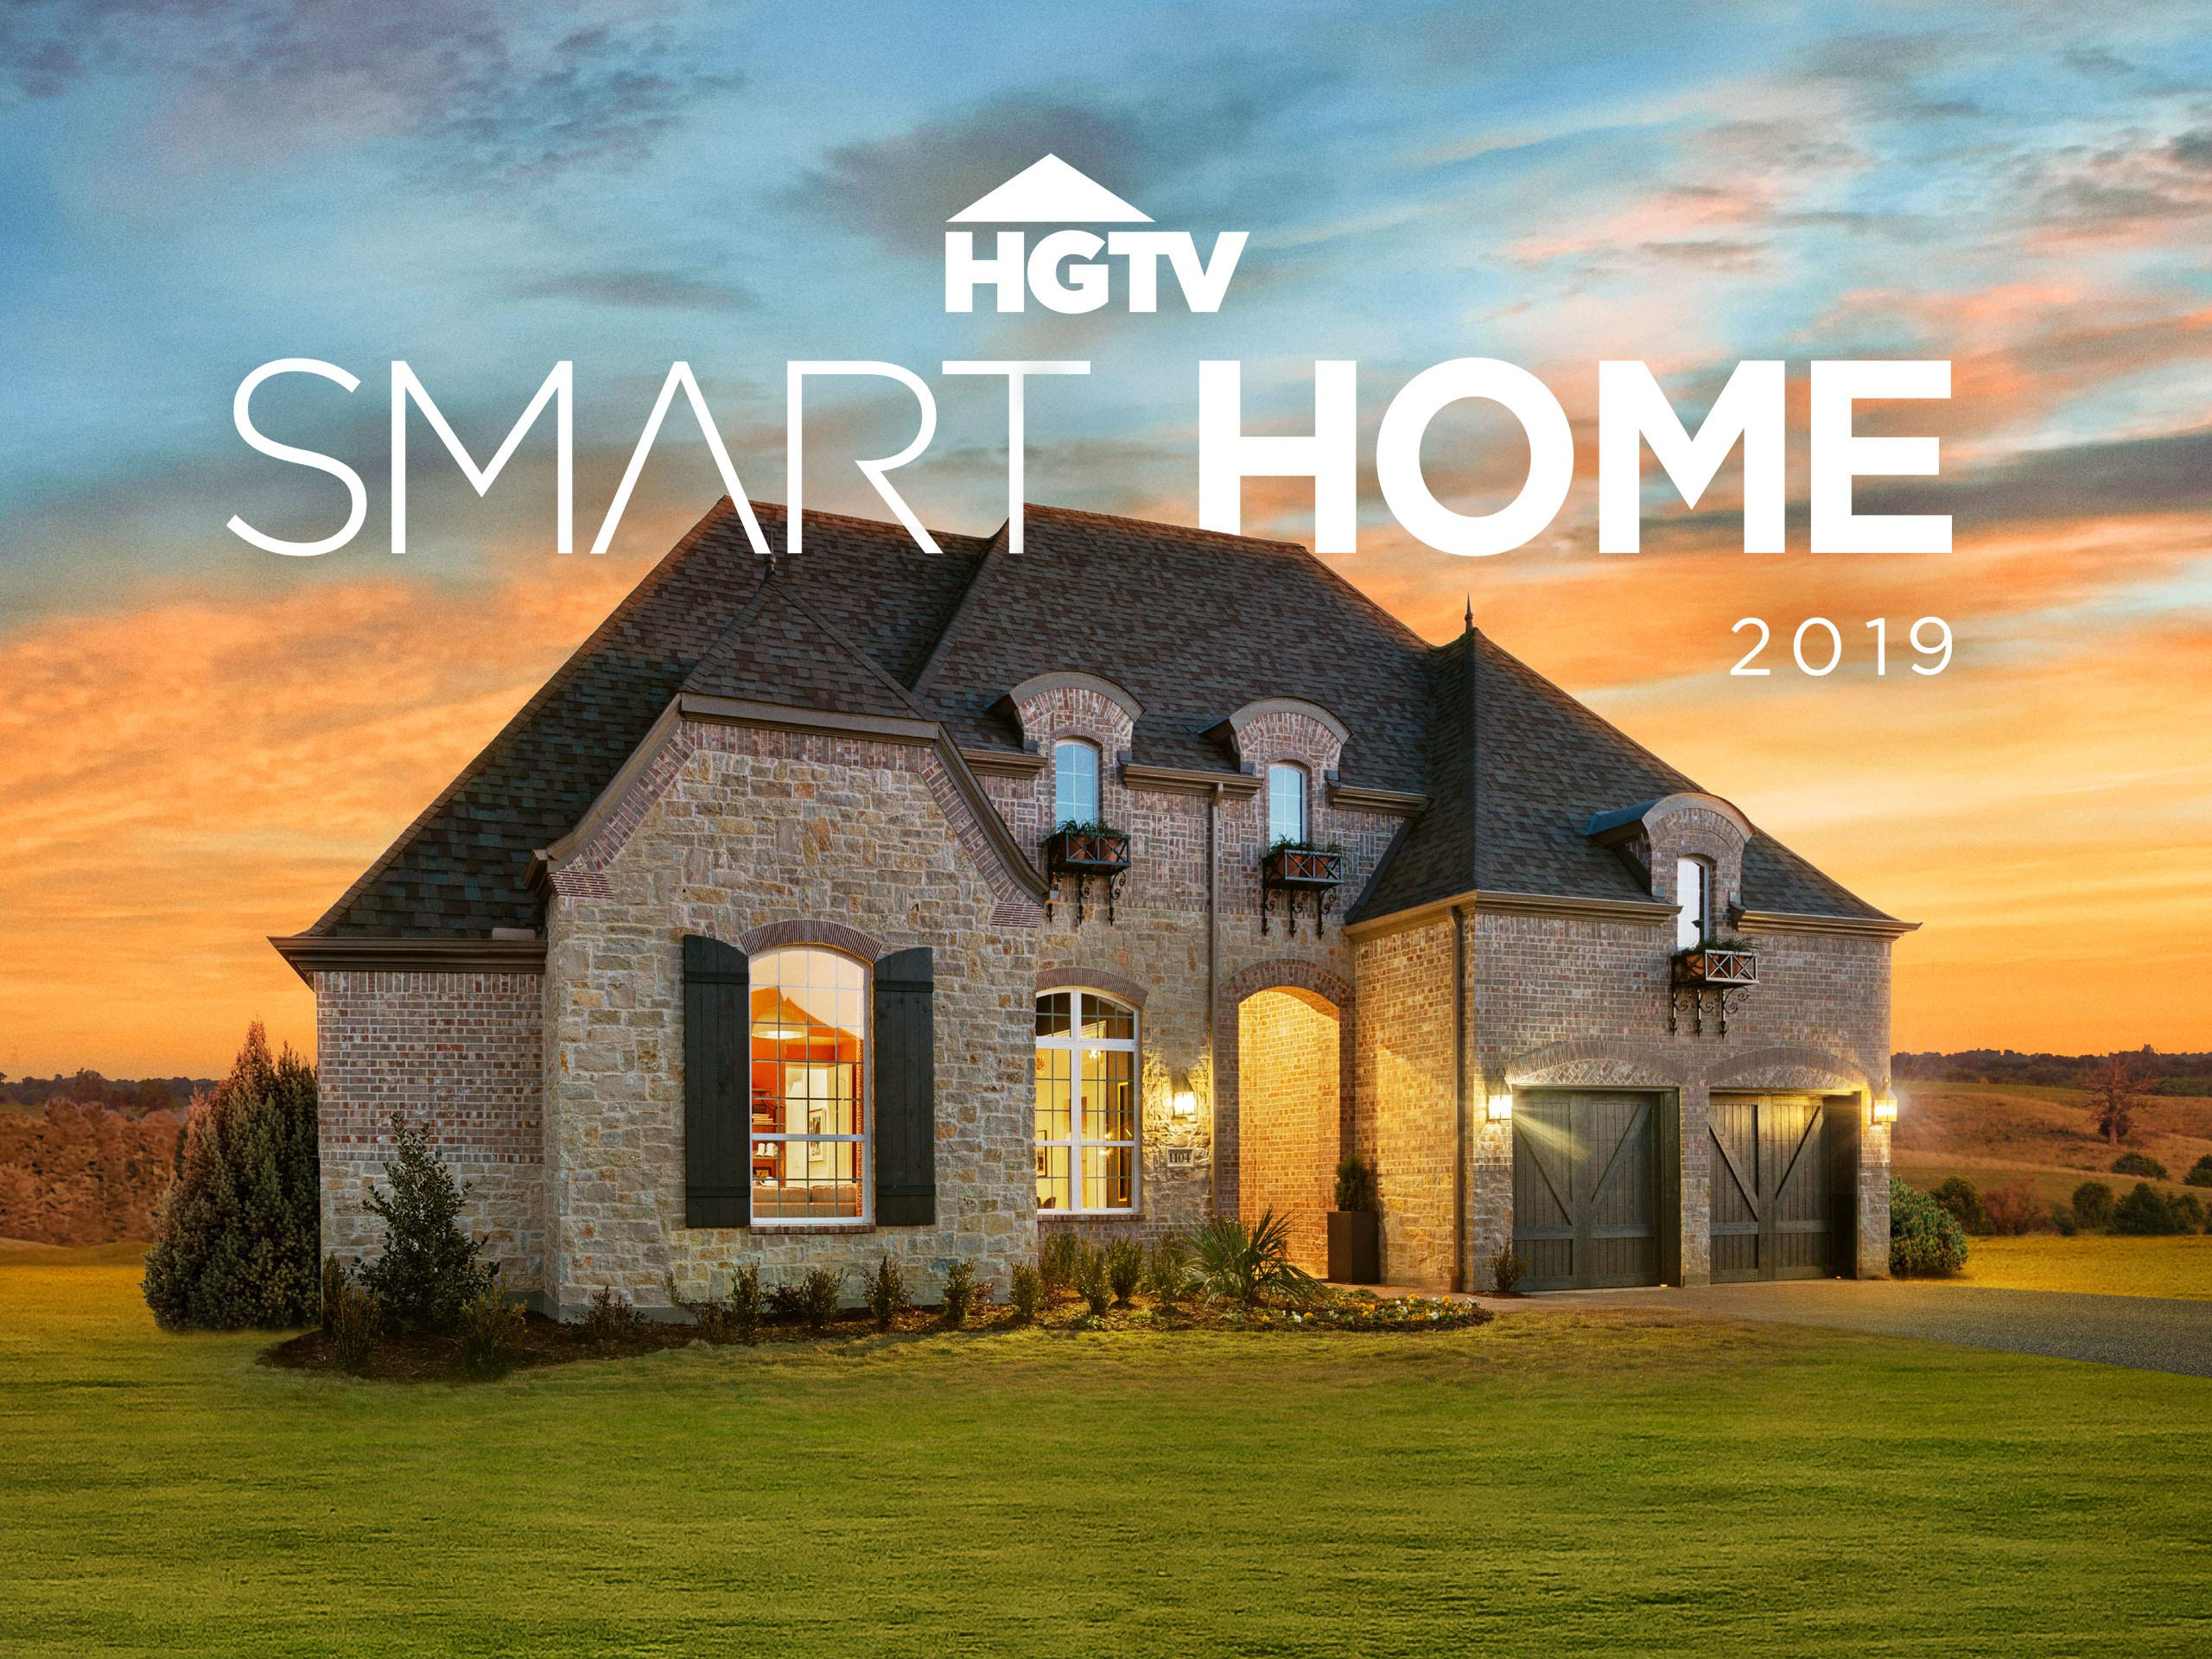 HGTV Smart Home Sweepstakes 2020</a><br> by <a href='/profile/Bling-King/'>Bling King</a>